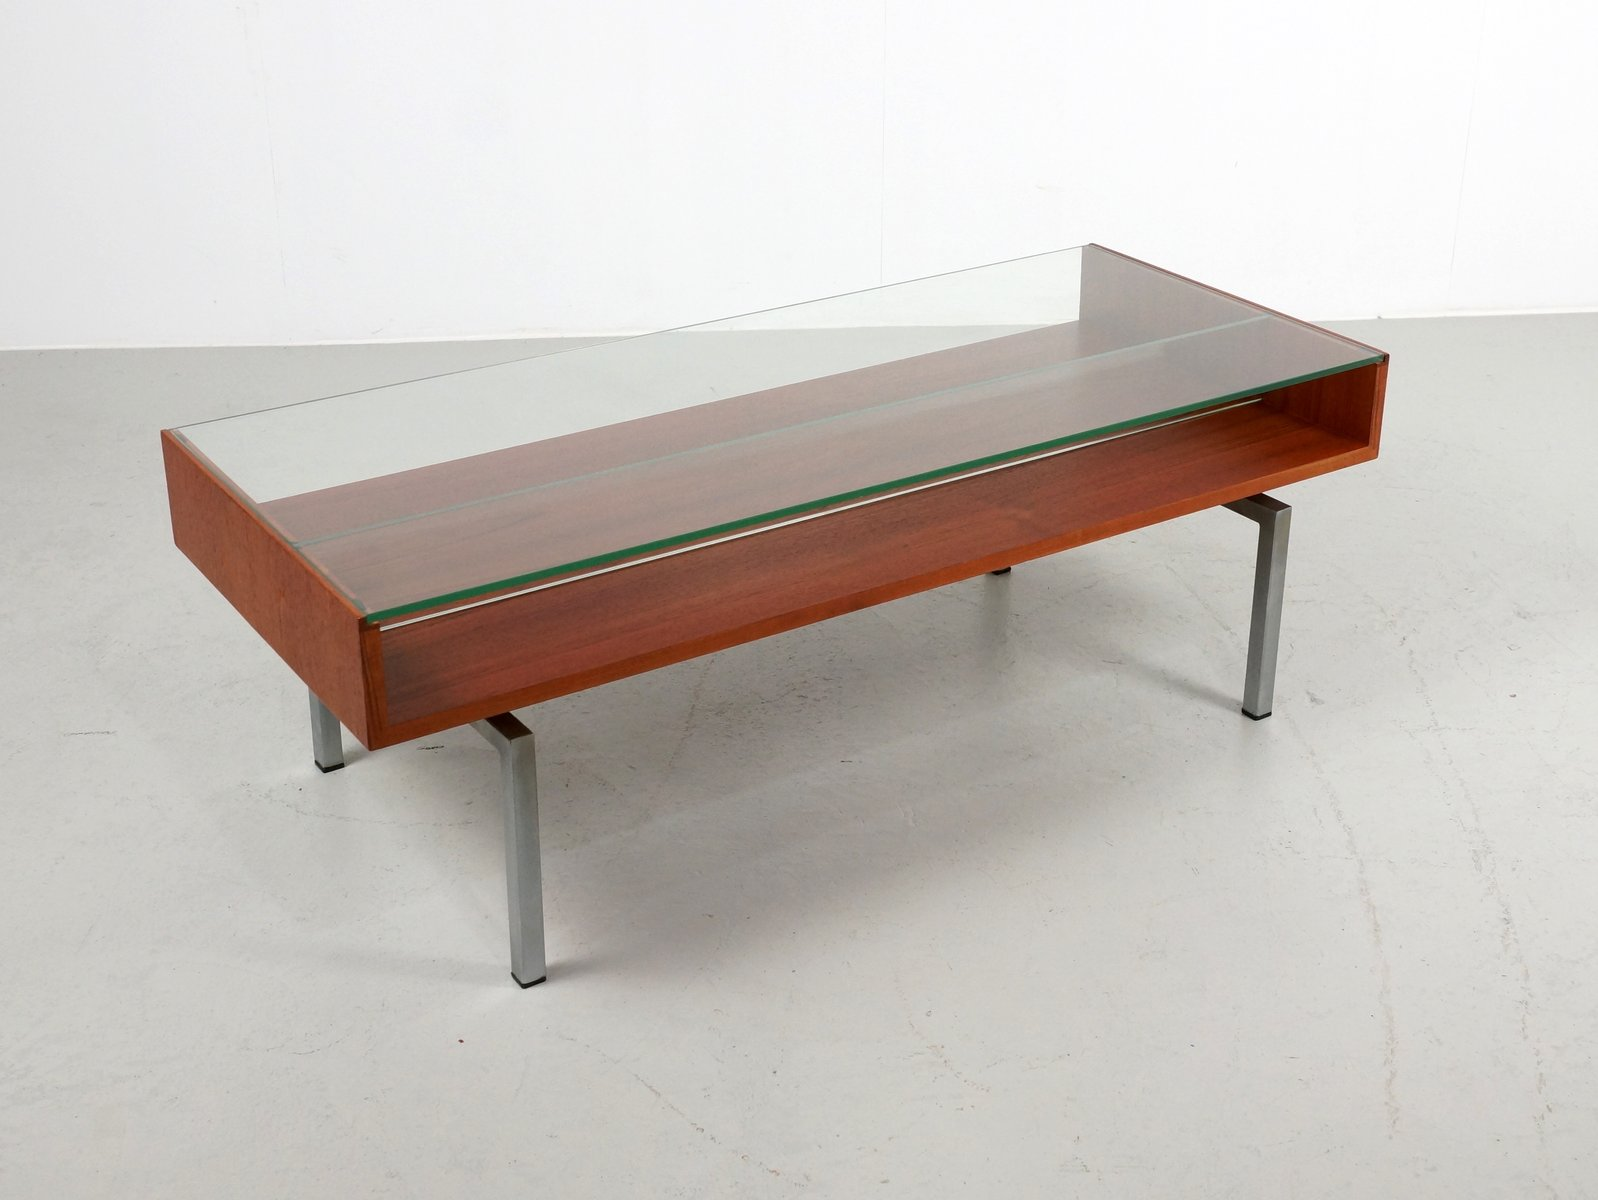 Vintage Coffee Table In Teak And Glass For Sale At Pamono